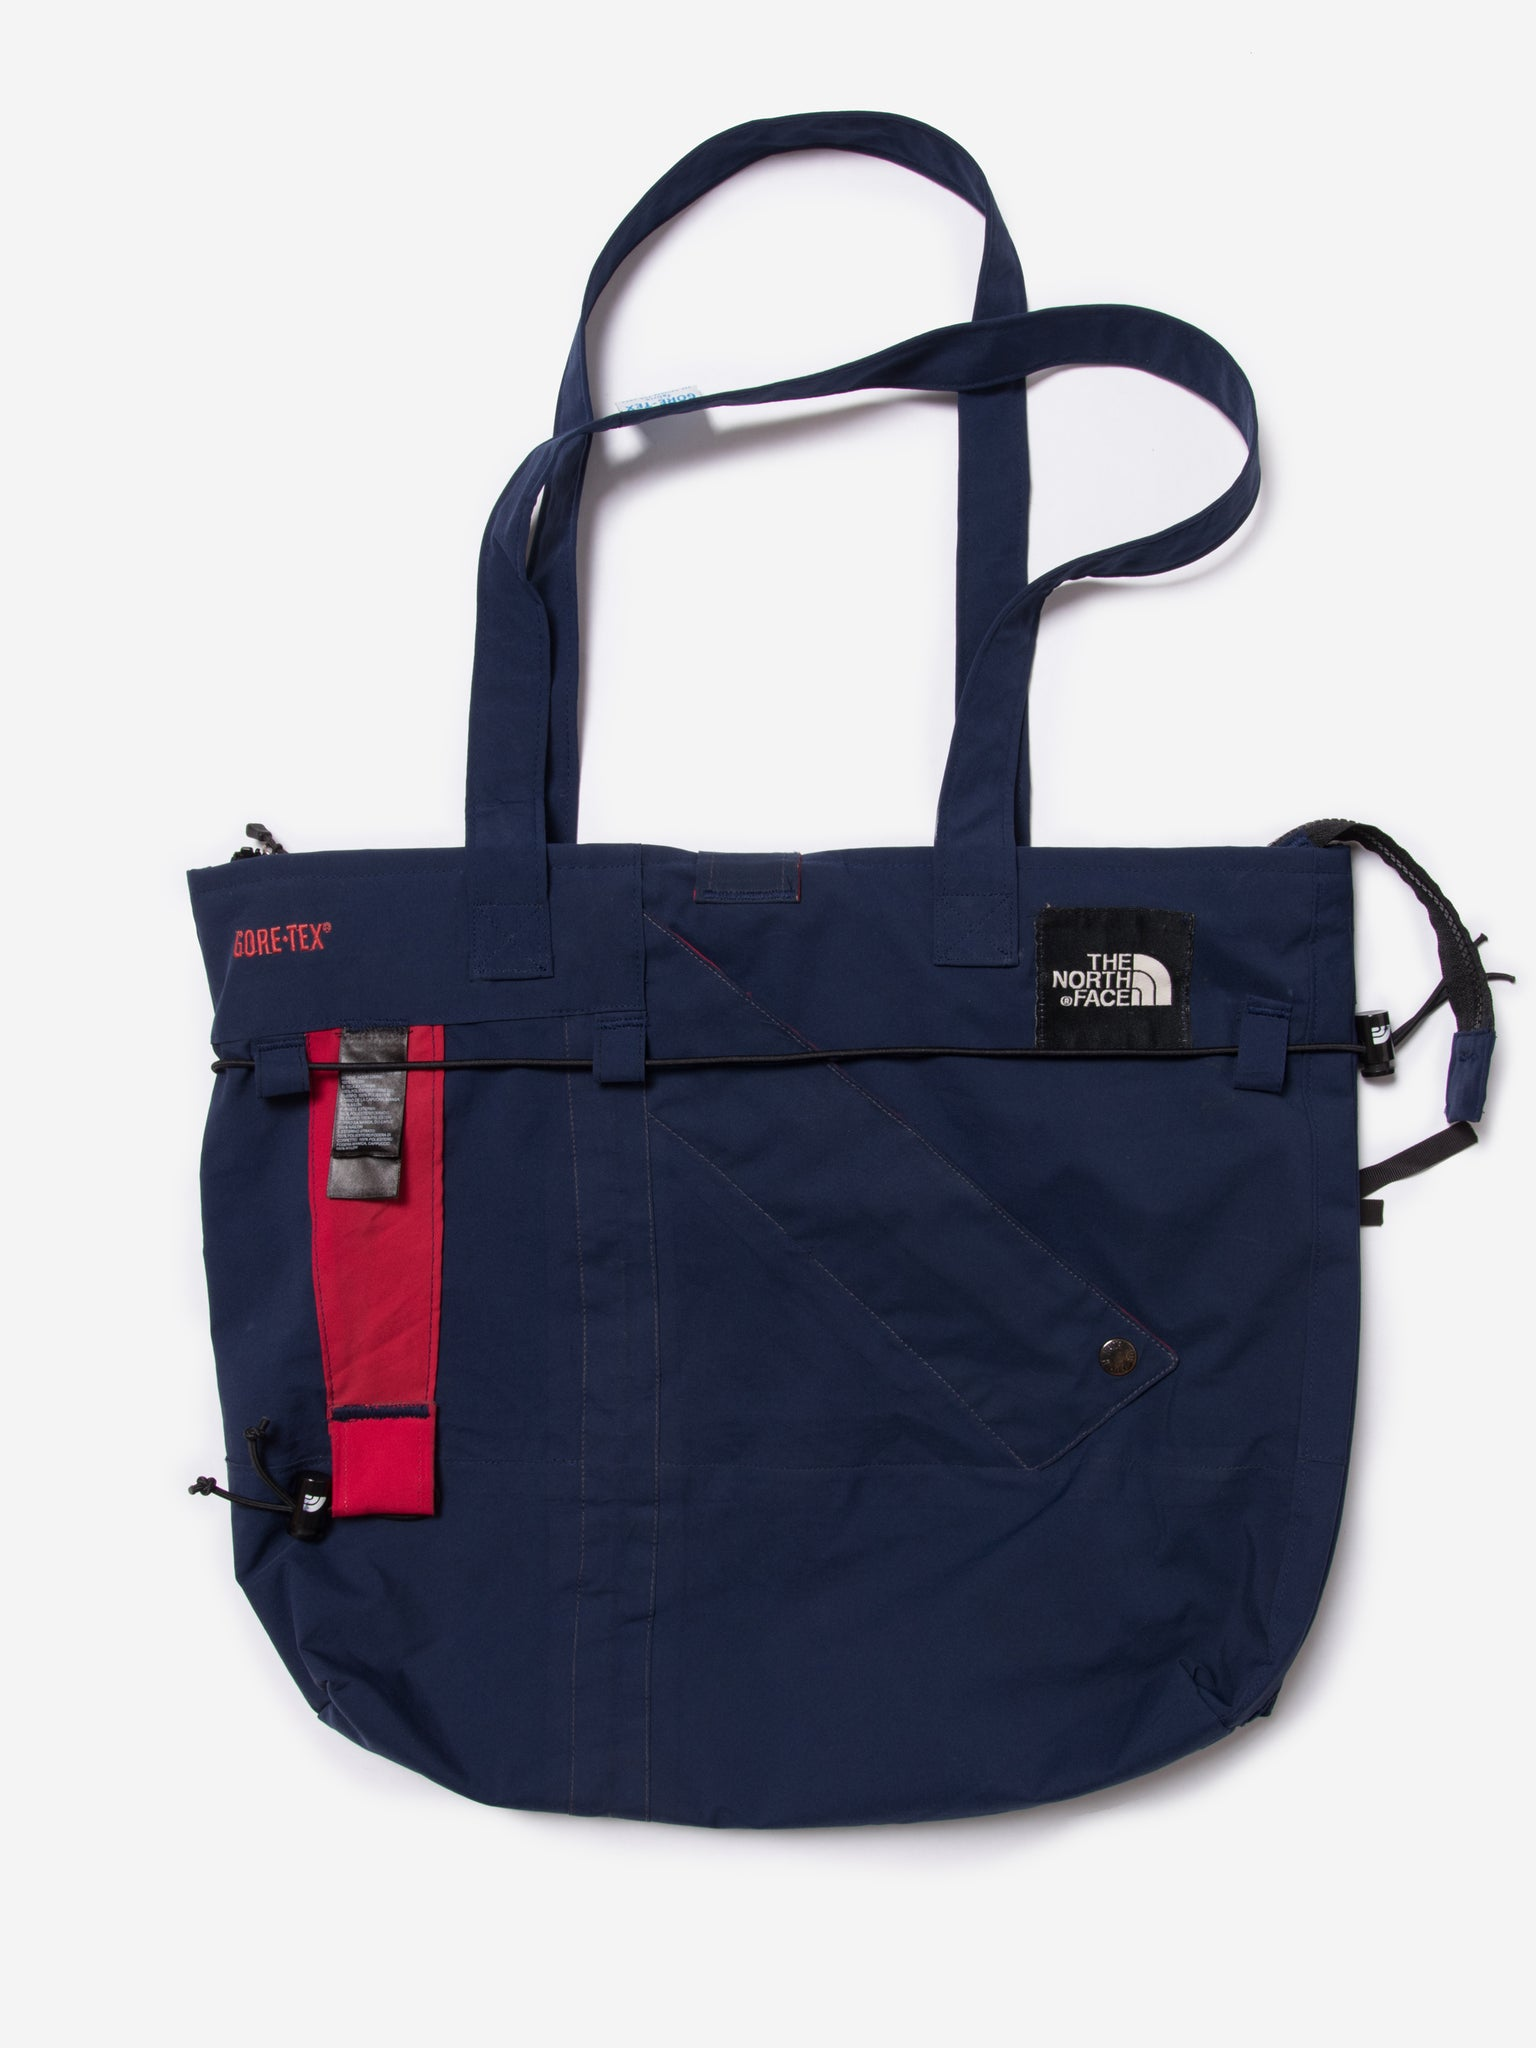 THE NORTH FACE RECONSTRUCTED TOTE BAG A.006